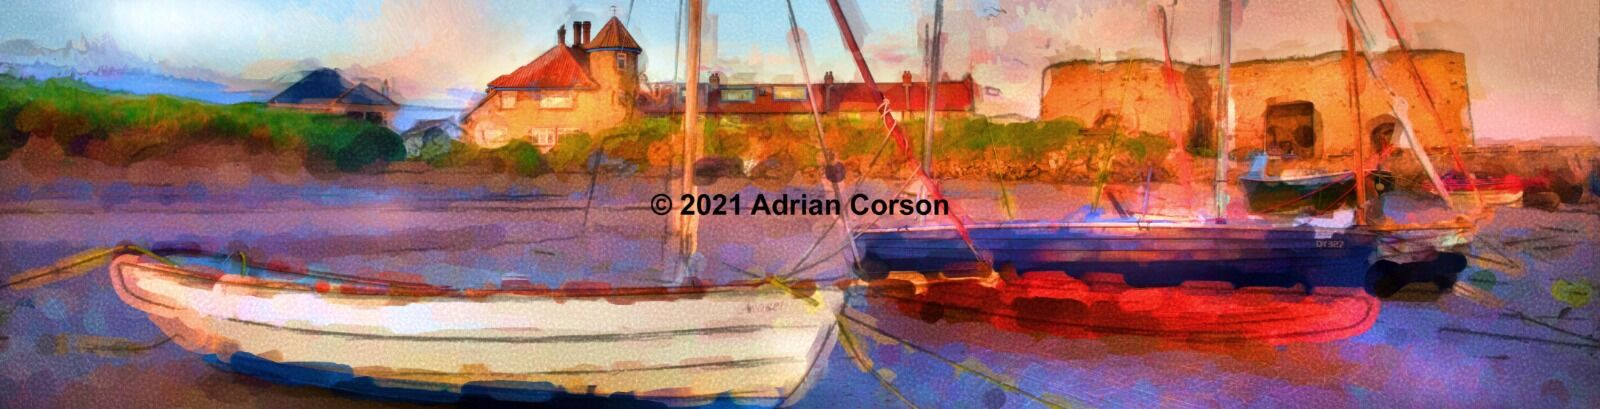 Untitled-9 Beadnell